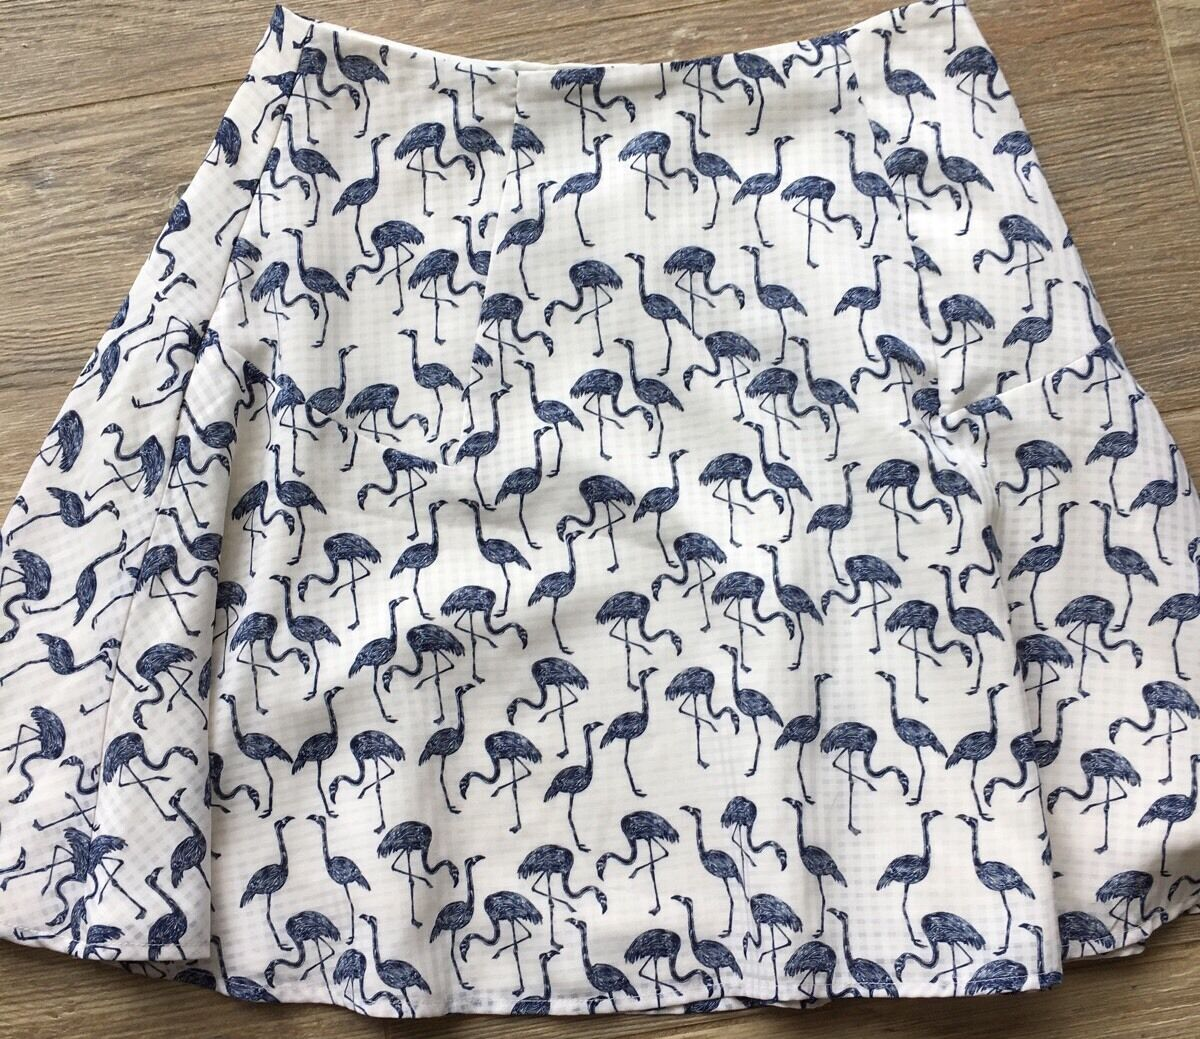 Anthropologie Corey Lynn Calter Flamingo Skirt Rare Worn Once 6